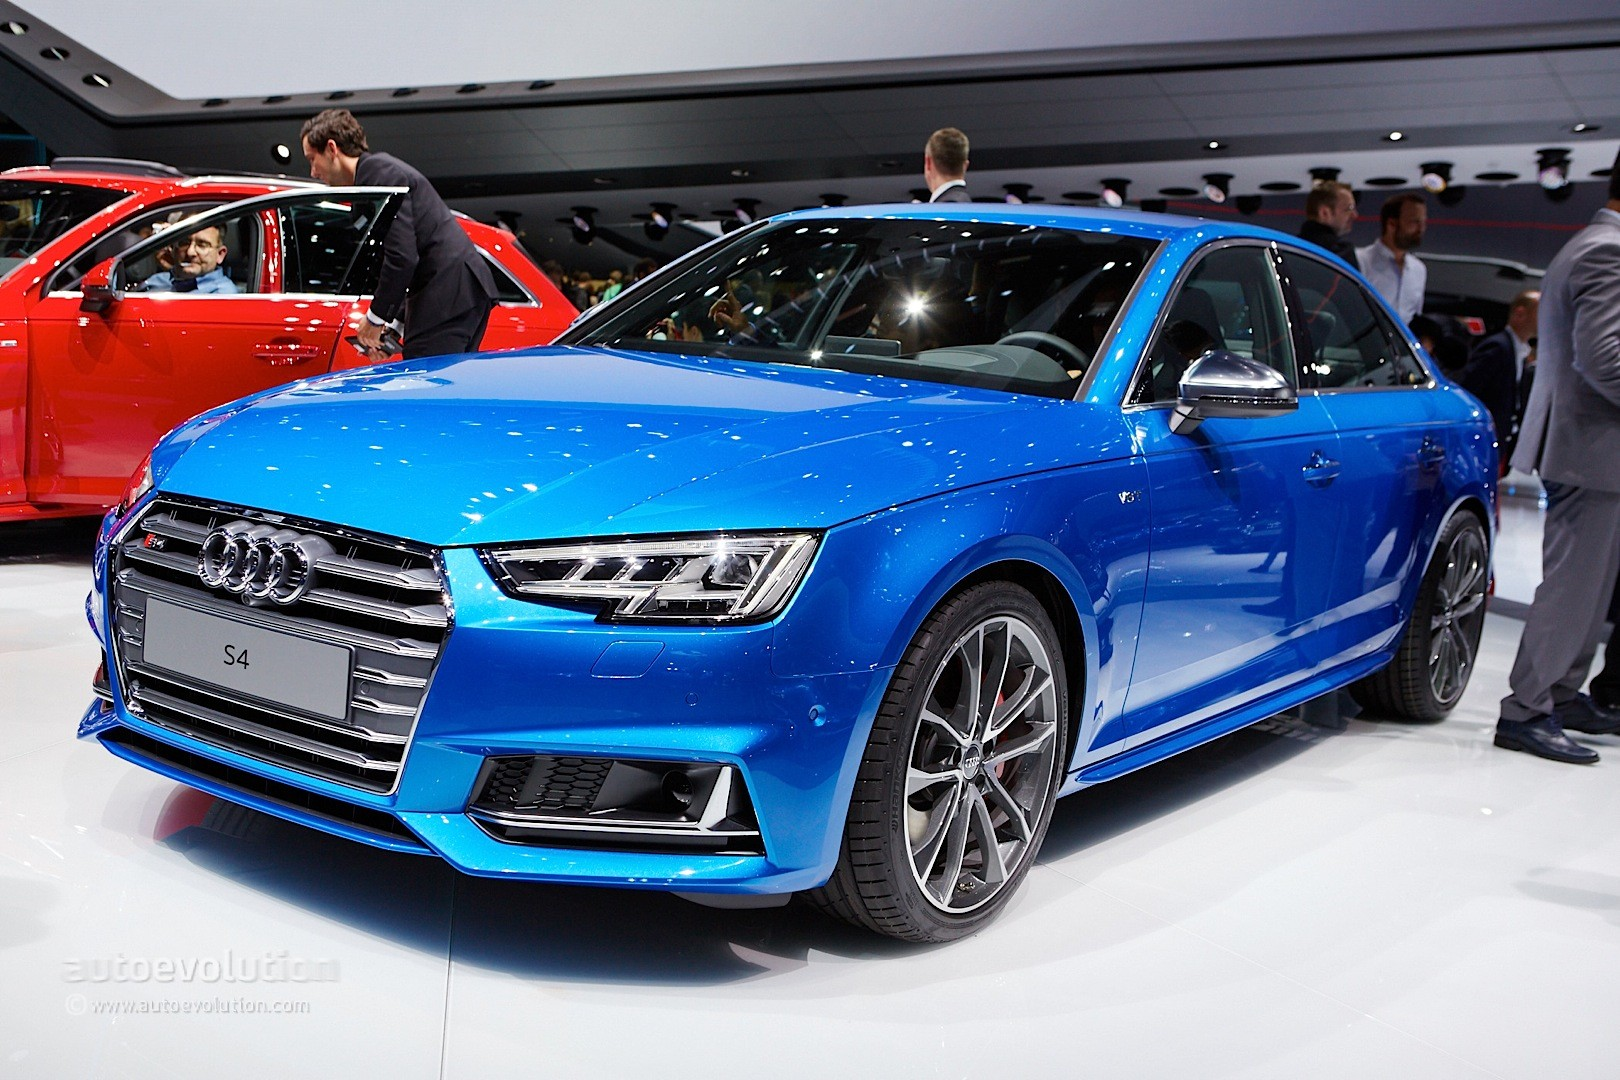 Image result for Audi RS4 frankfurt 2017